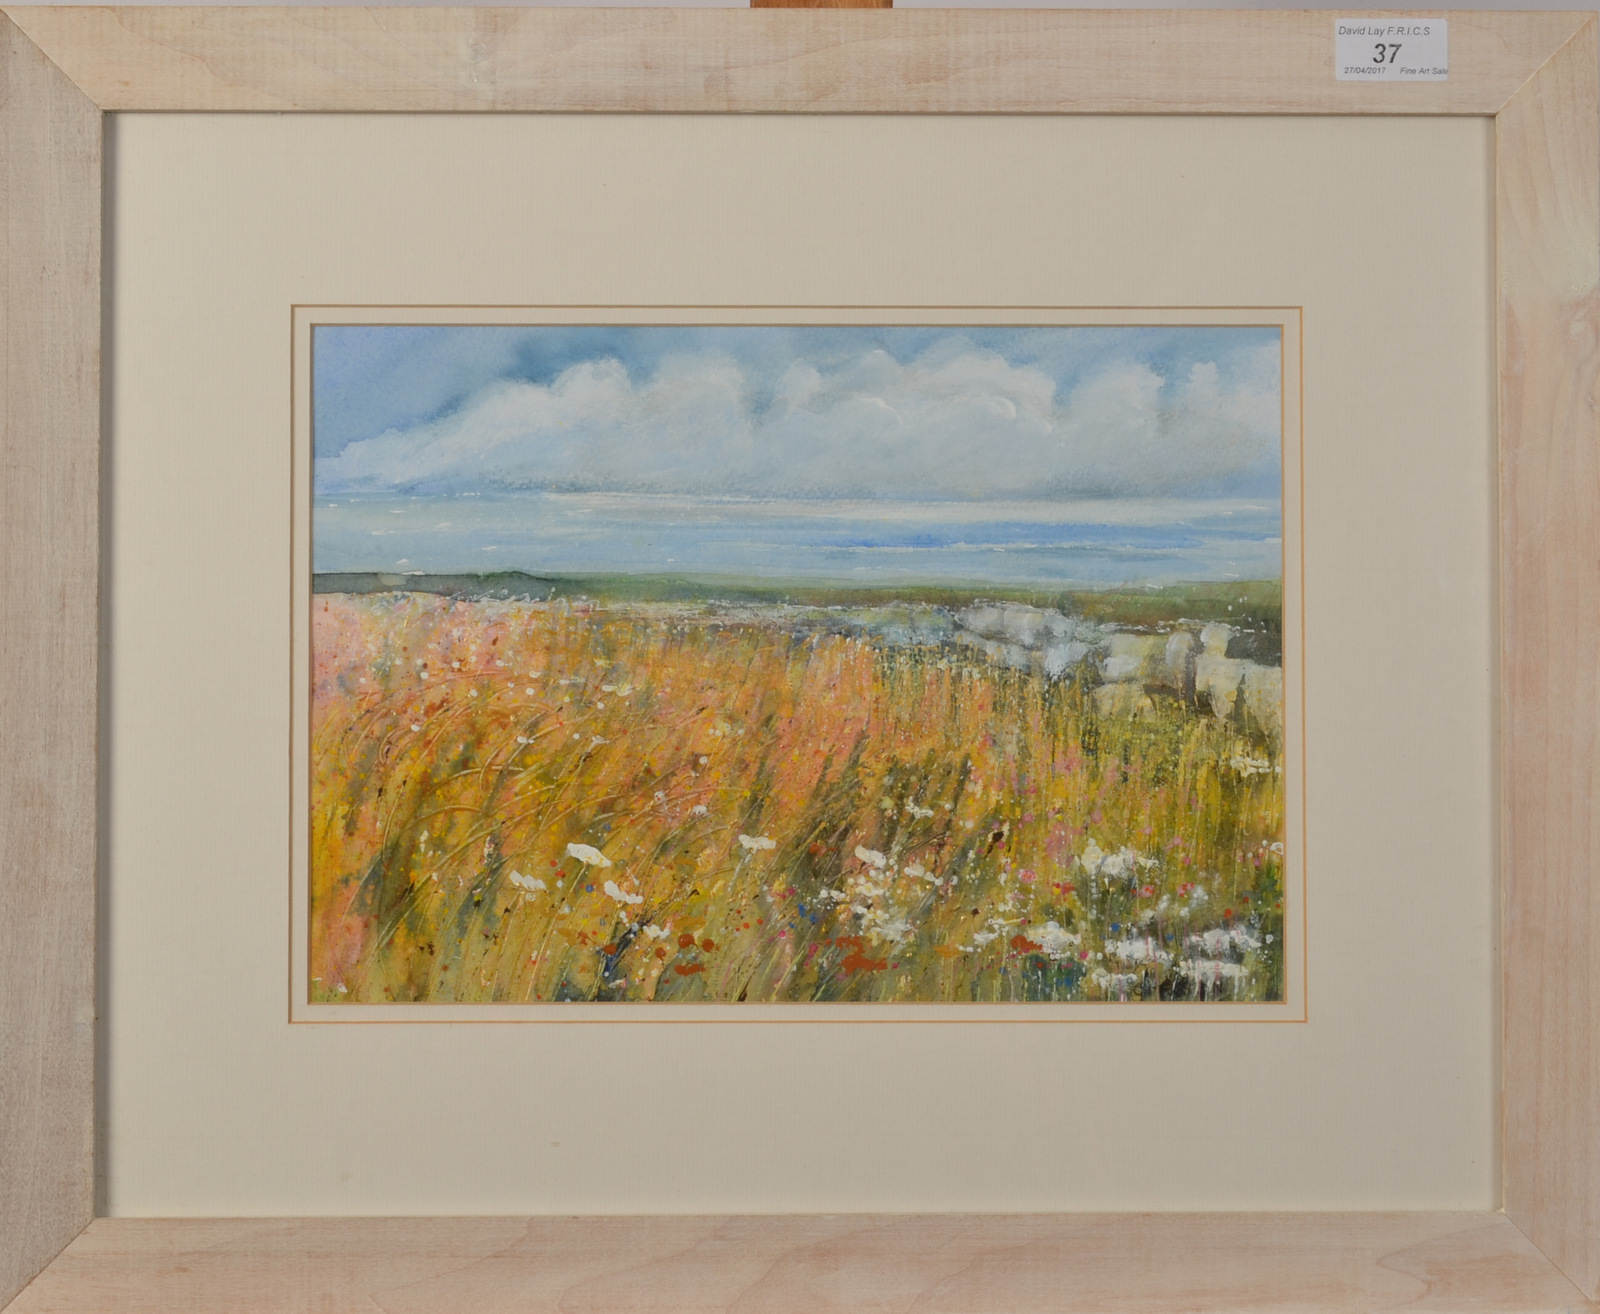 Lot 37 - C PRESTON The West Wind Blows Mixed media Signed Titled on the back 23 x 33cm